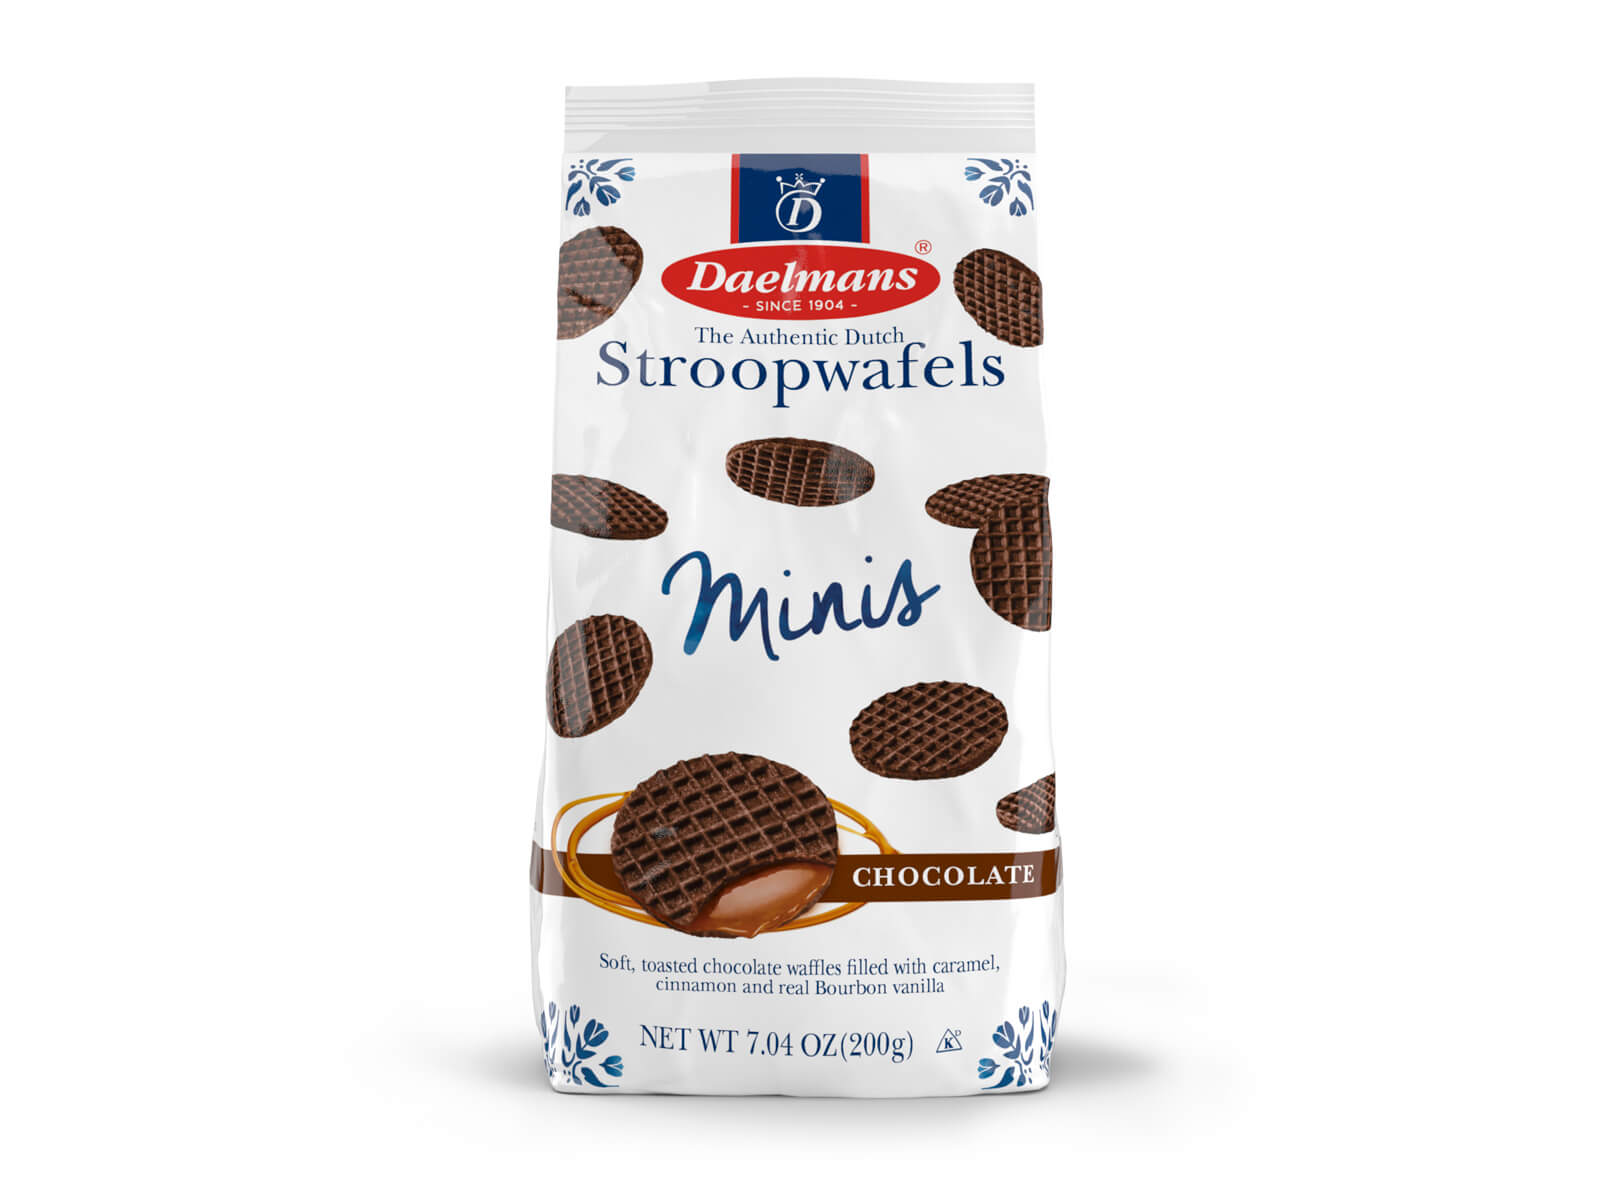 Mini chocolate Stroopwafels from Daelmans in cello bag